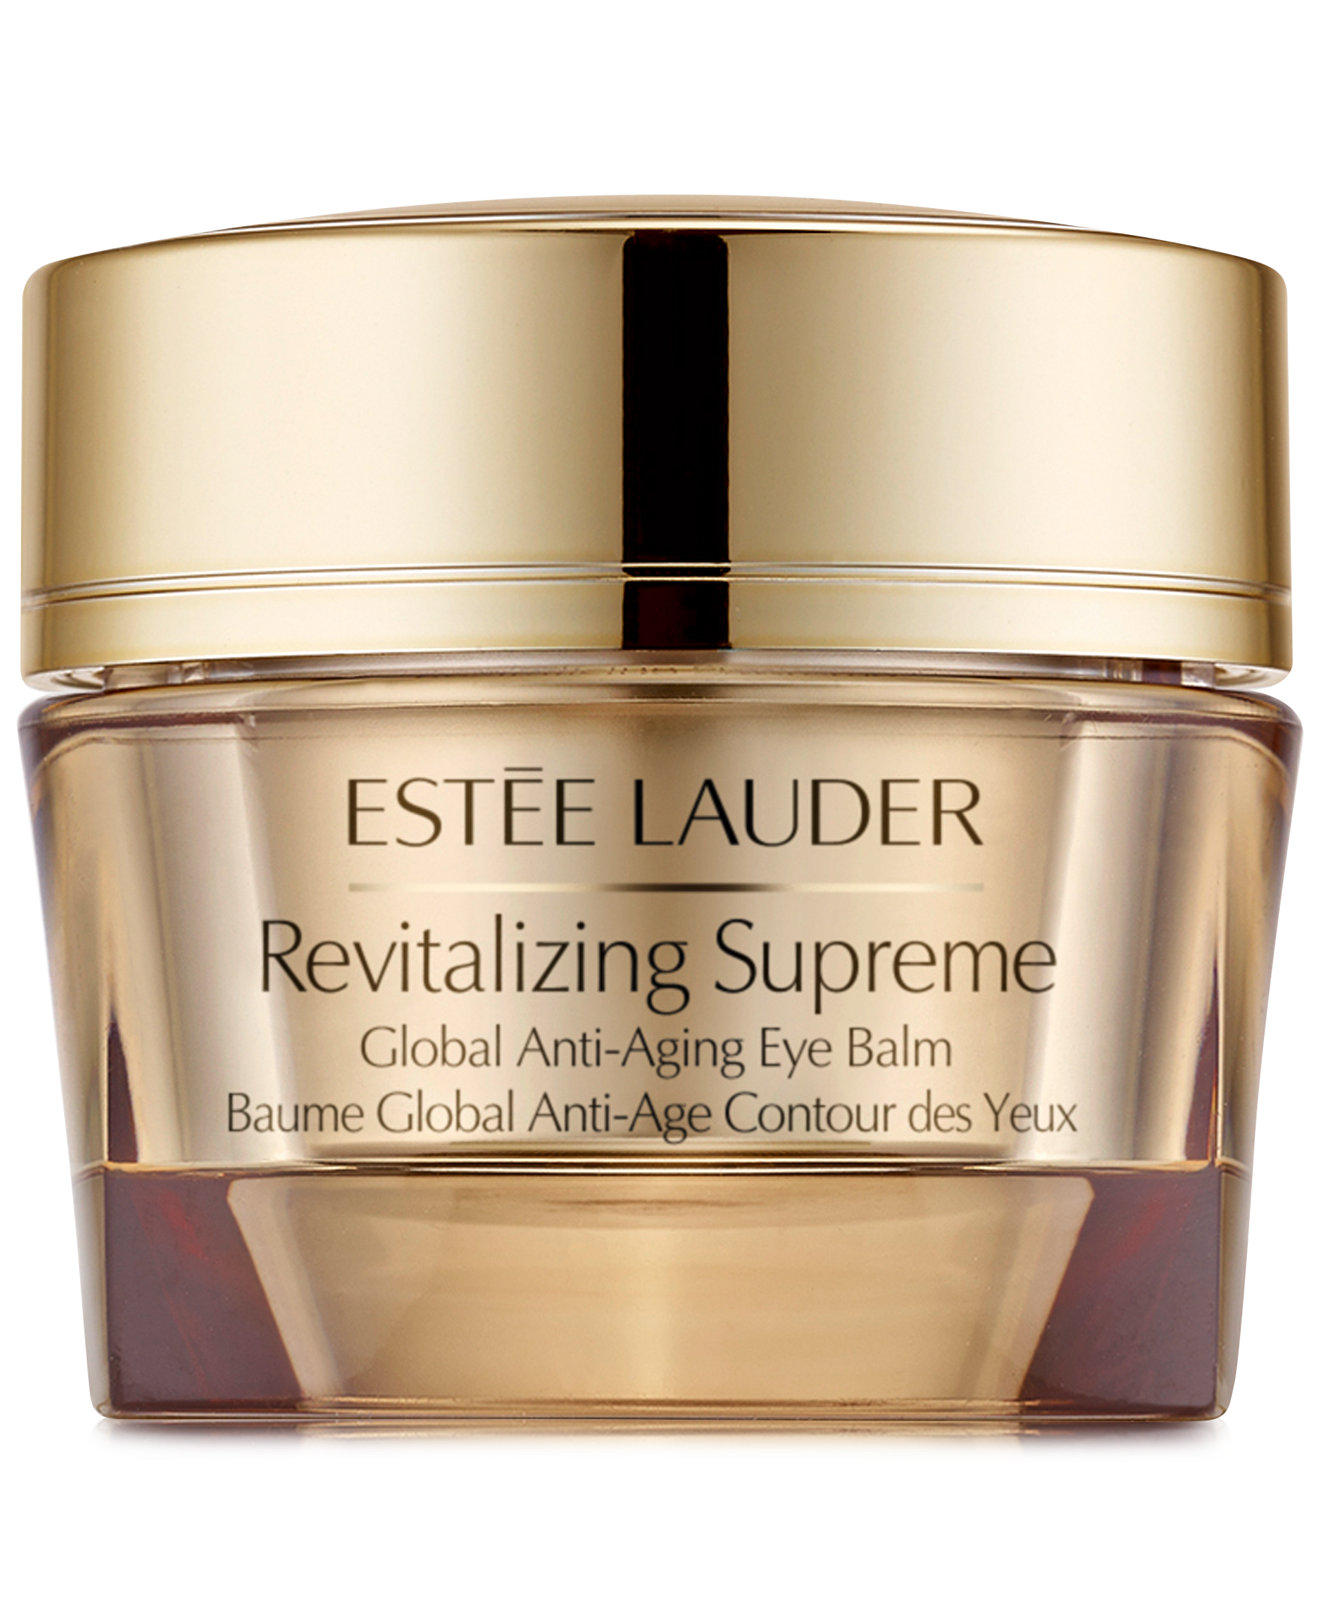 Free Gift (Worth Over $150) with Revitalizing Supreme Global Anti-Aging Creme Purchase + Free Shipping @ esteelauder.com